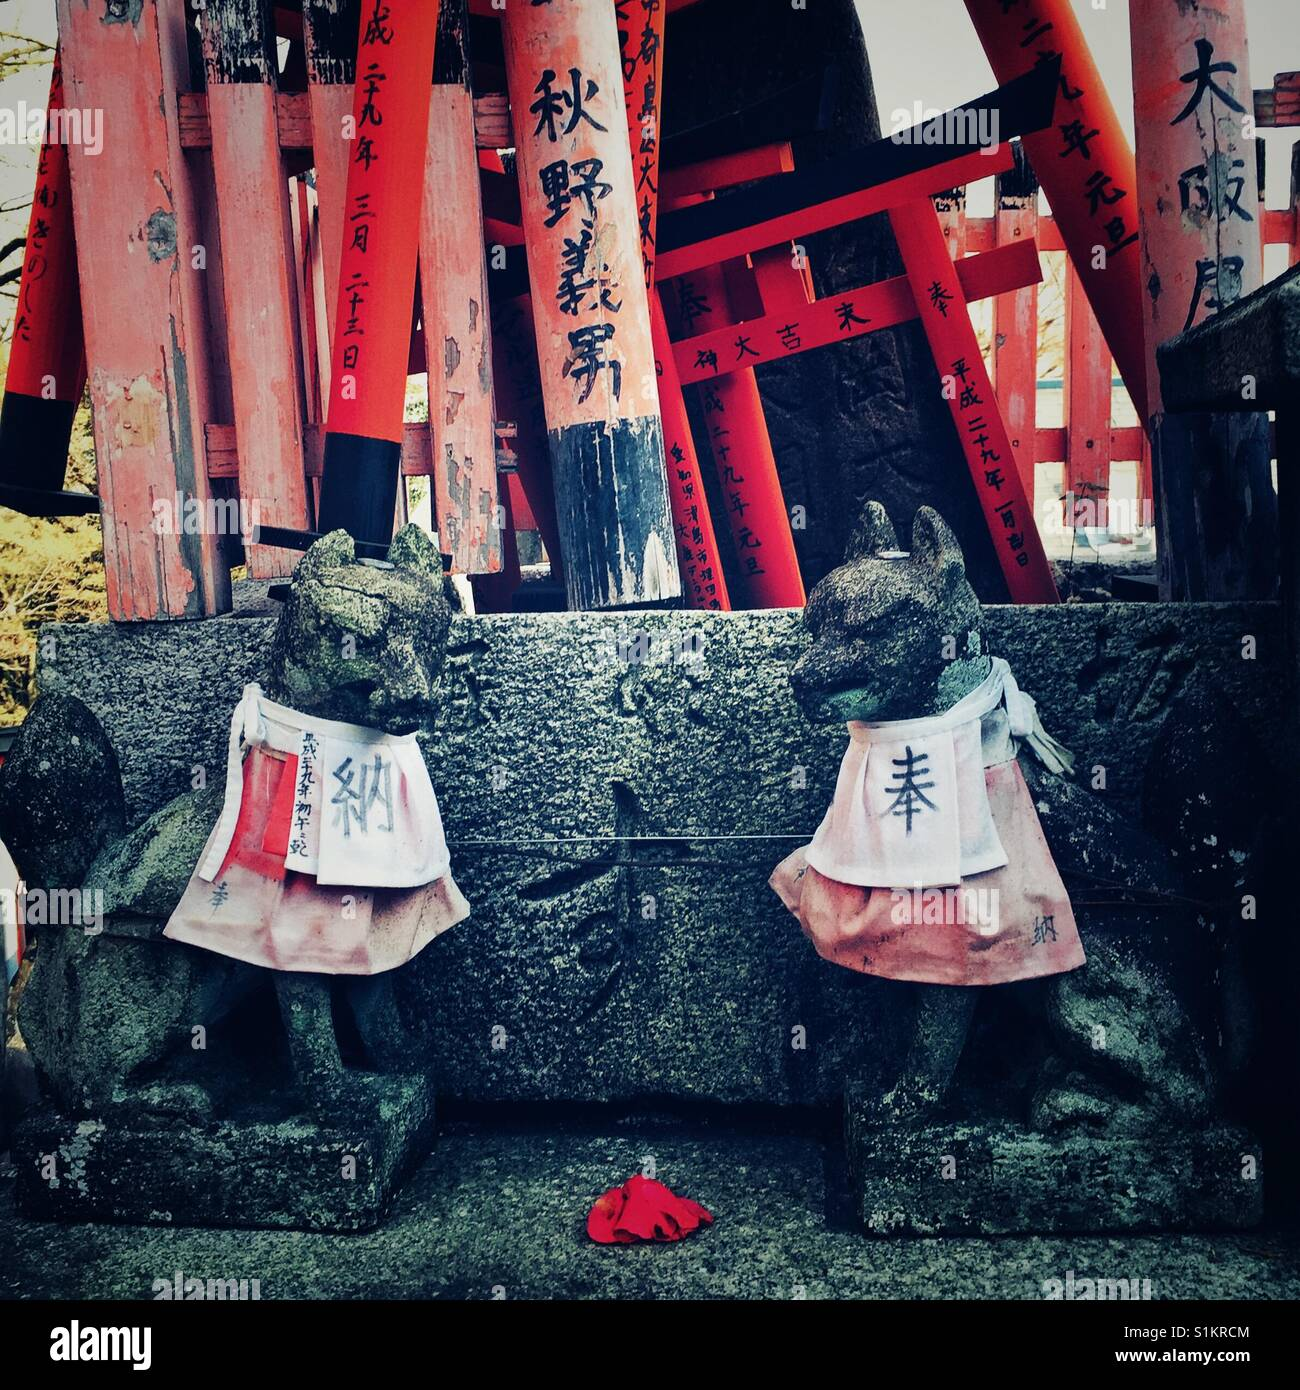 Two stone carved foxes in aprons guard torii gates at Fushimi Inari in Kyoto - Stock Image